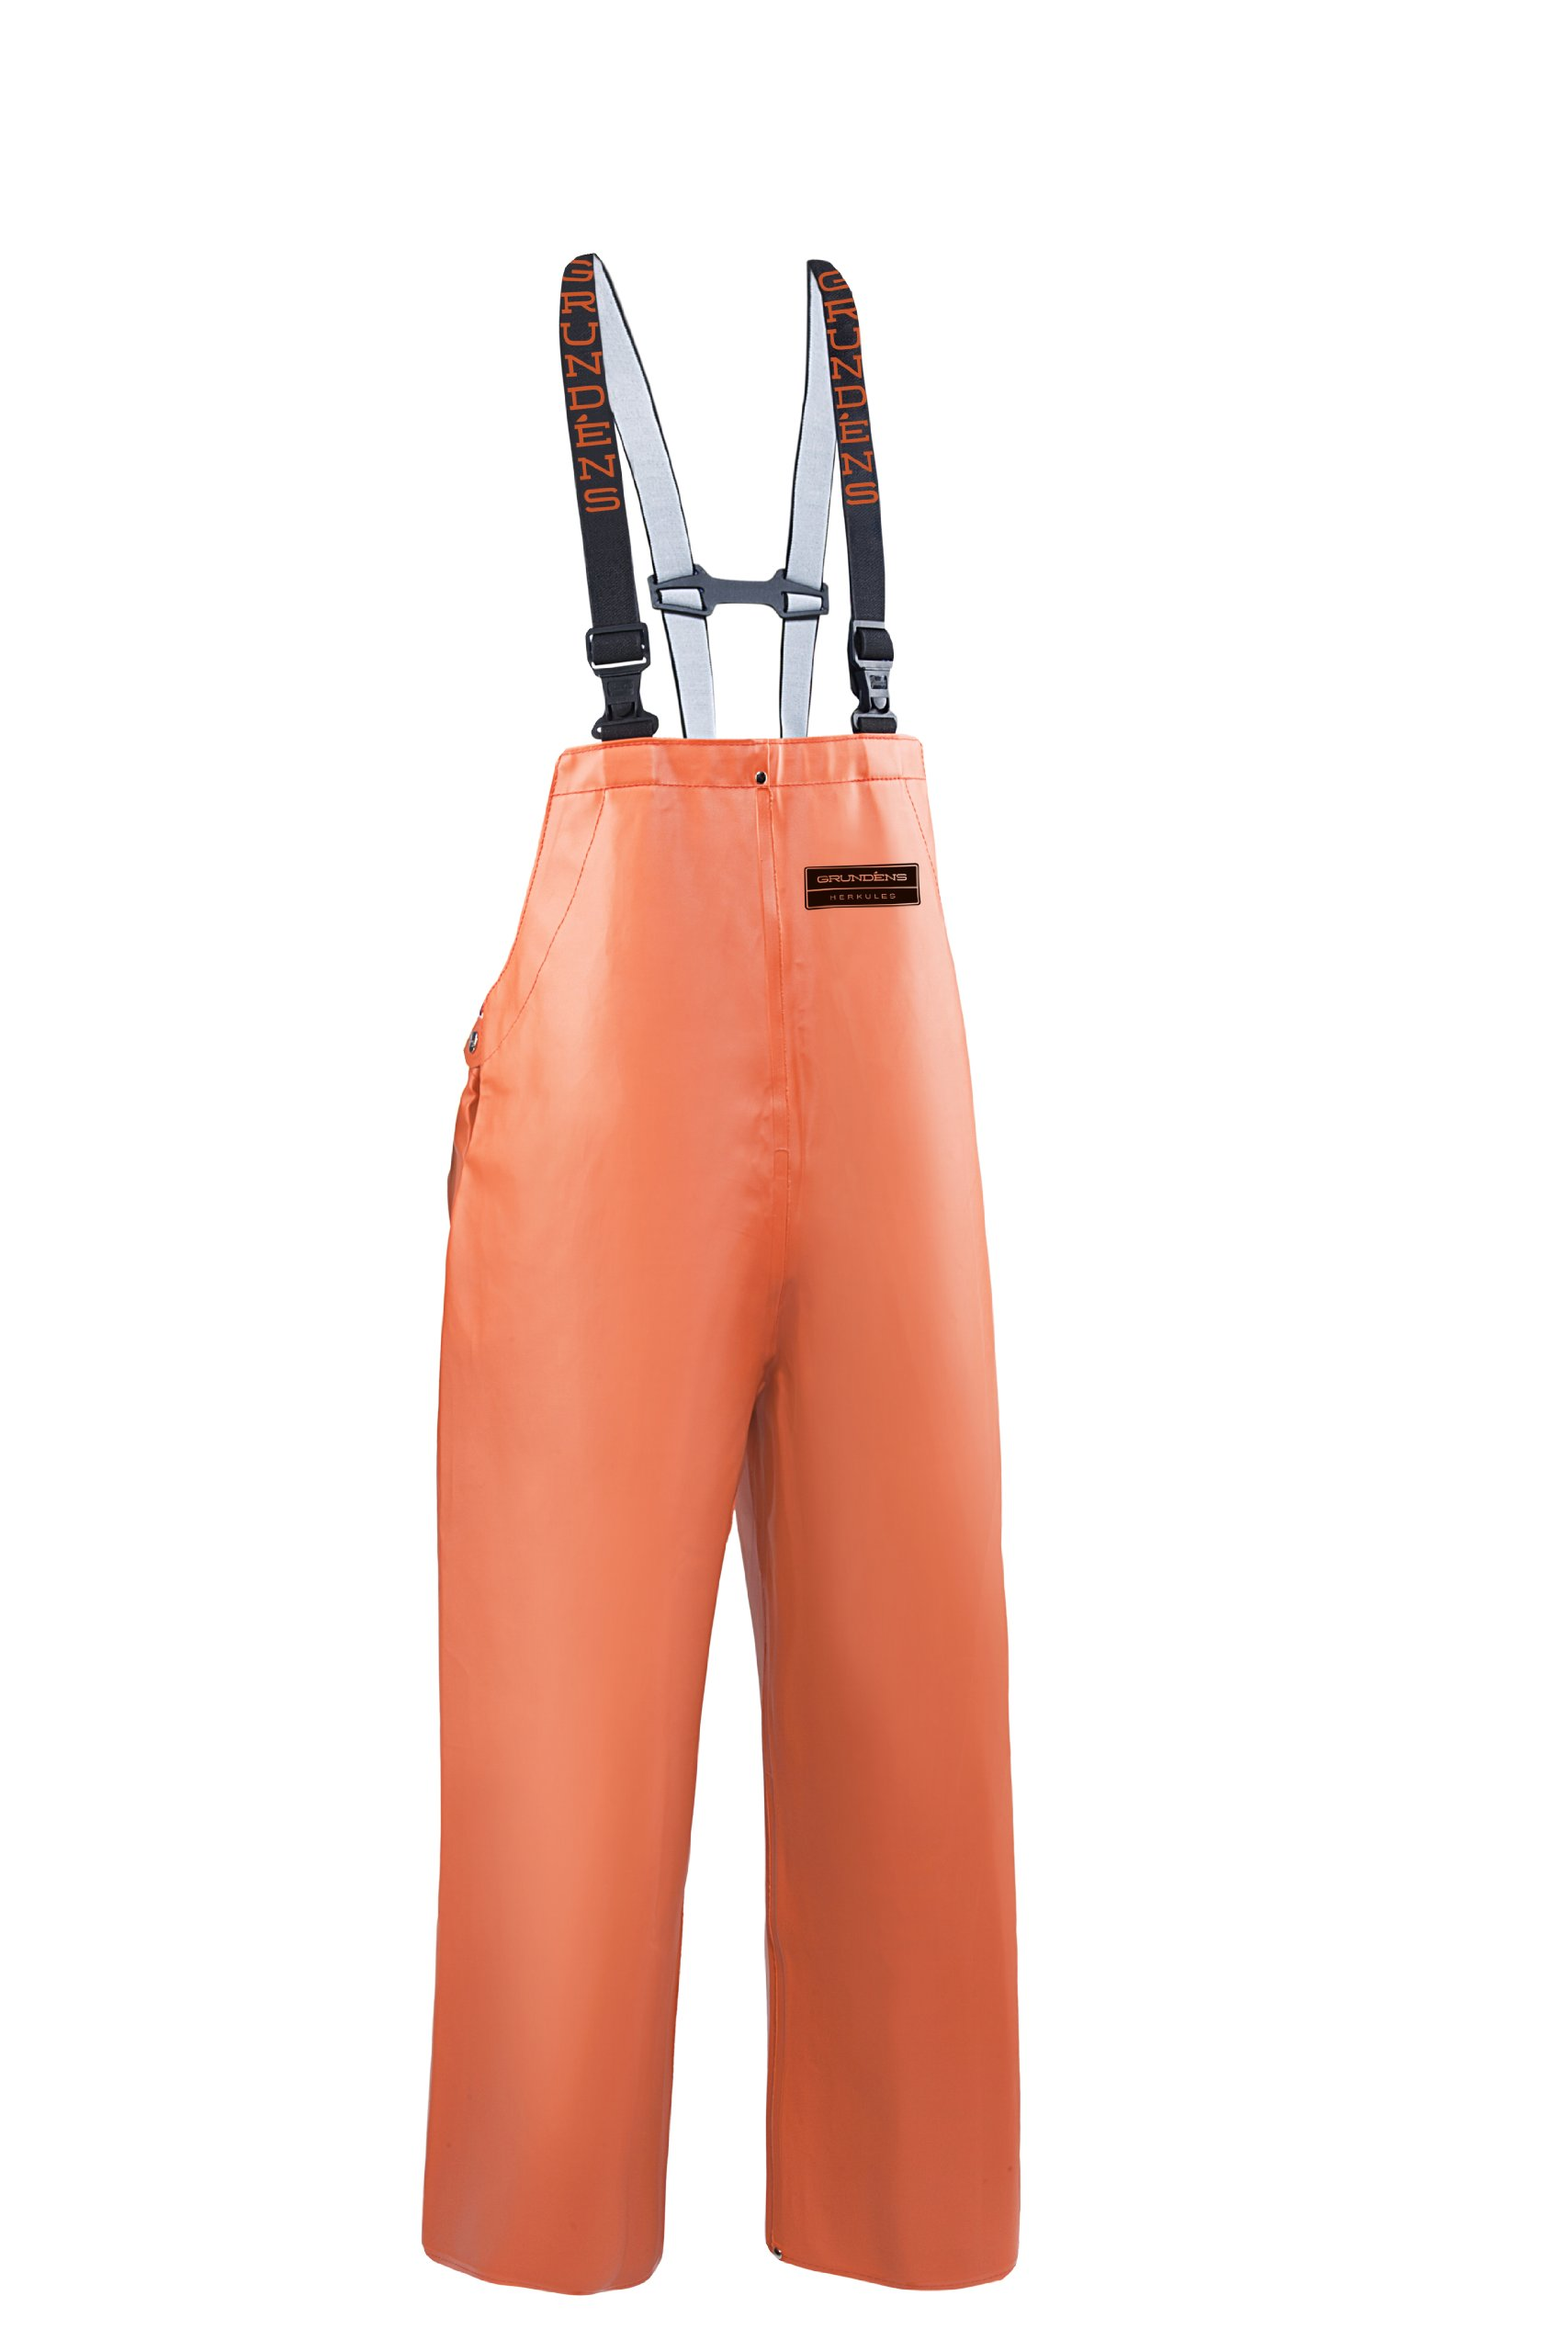 Grundens Herkules 16 Pants - Orange - Medium by Grundens